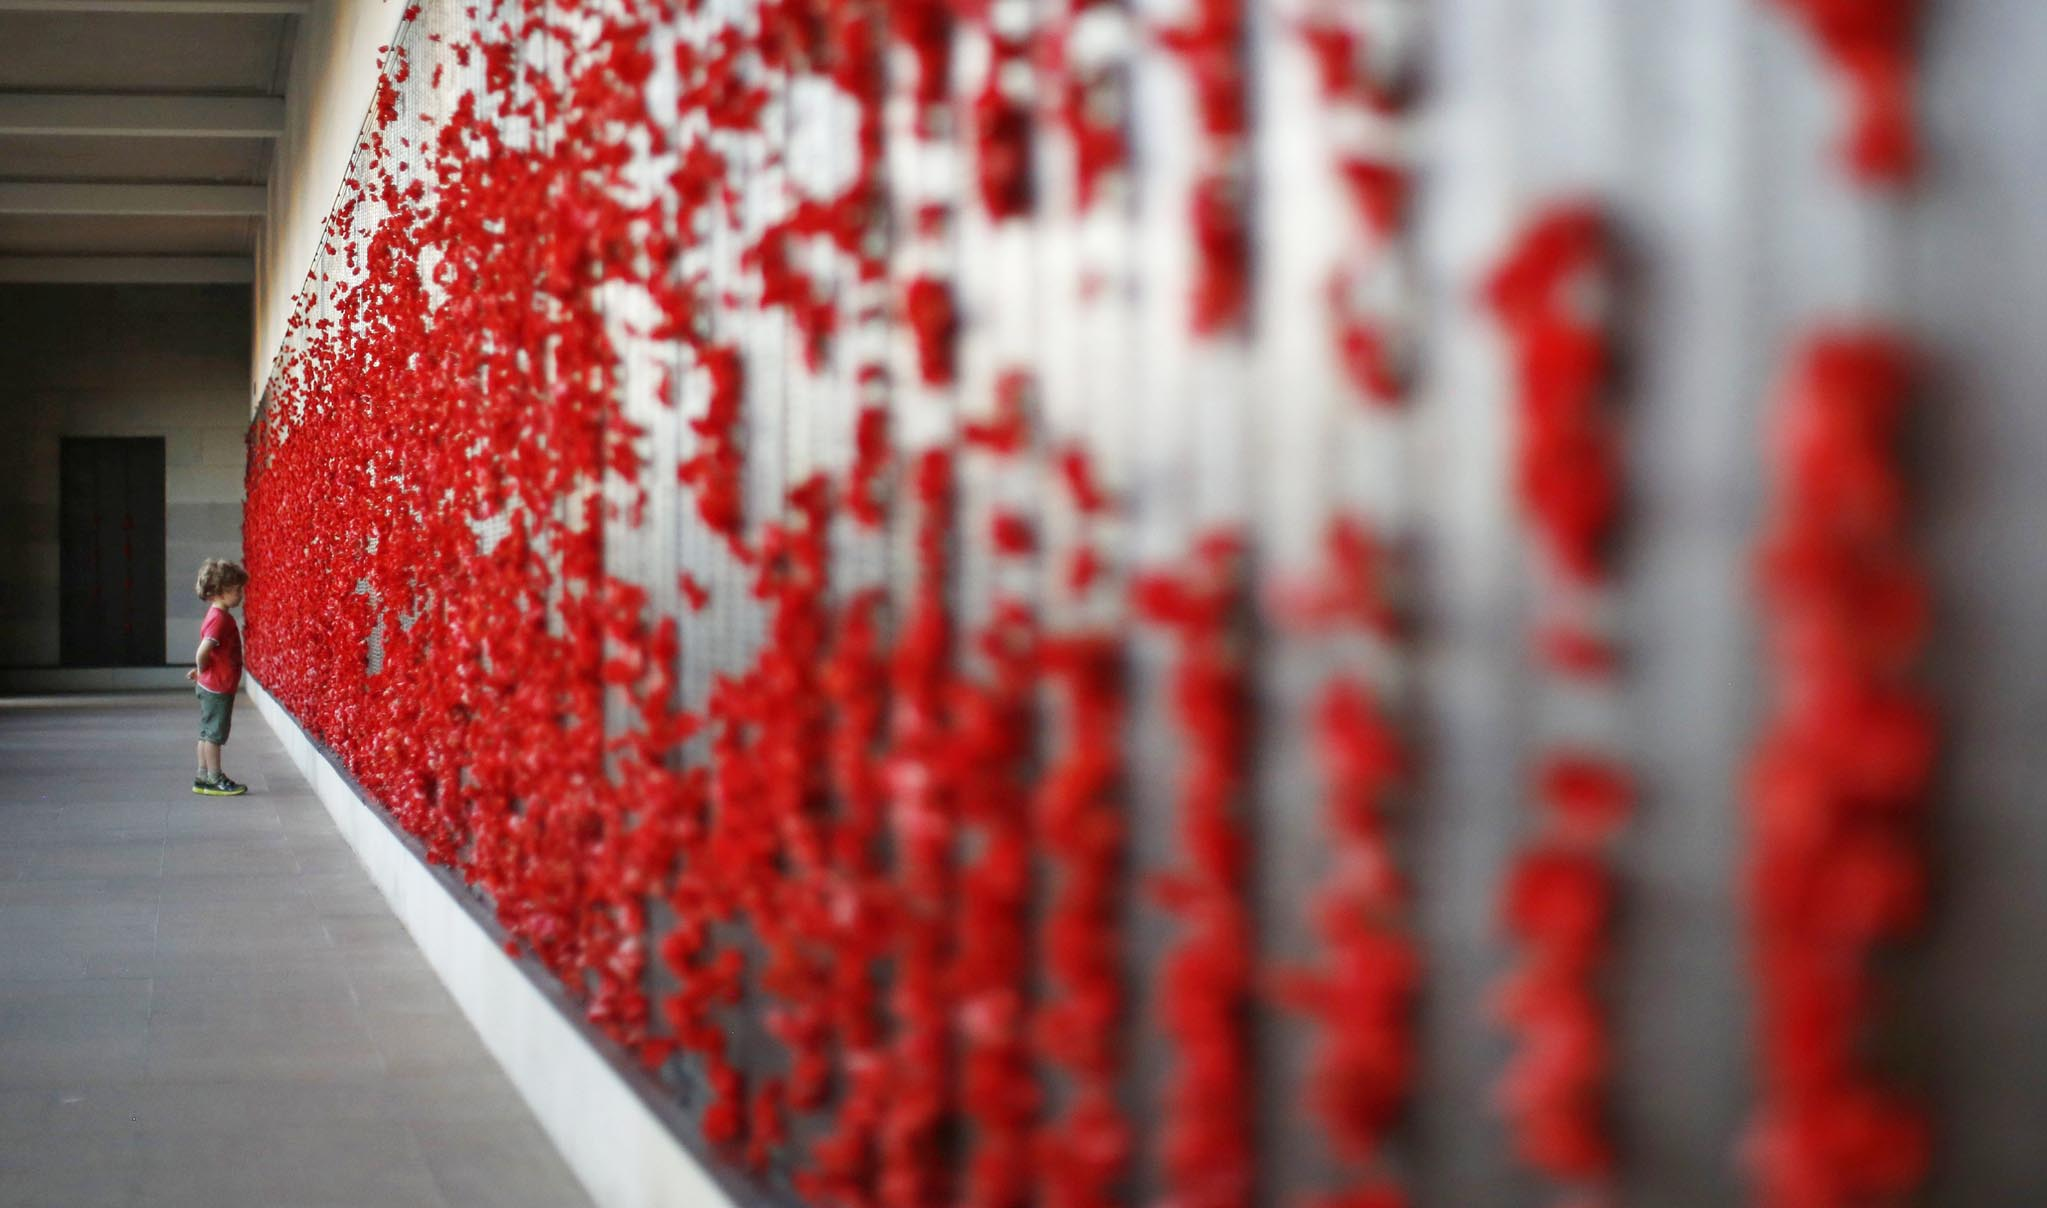 A boy looks at the World War One Wall of Remembrance lined with hundreds of red poppies on the eve of ANZAC Day at the Australian National War Memorial in Canberra